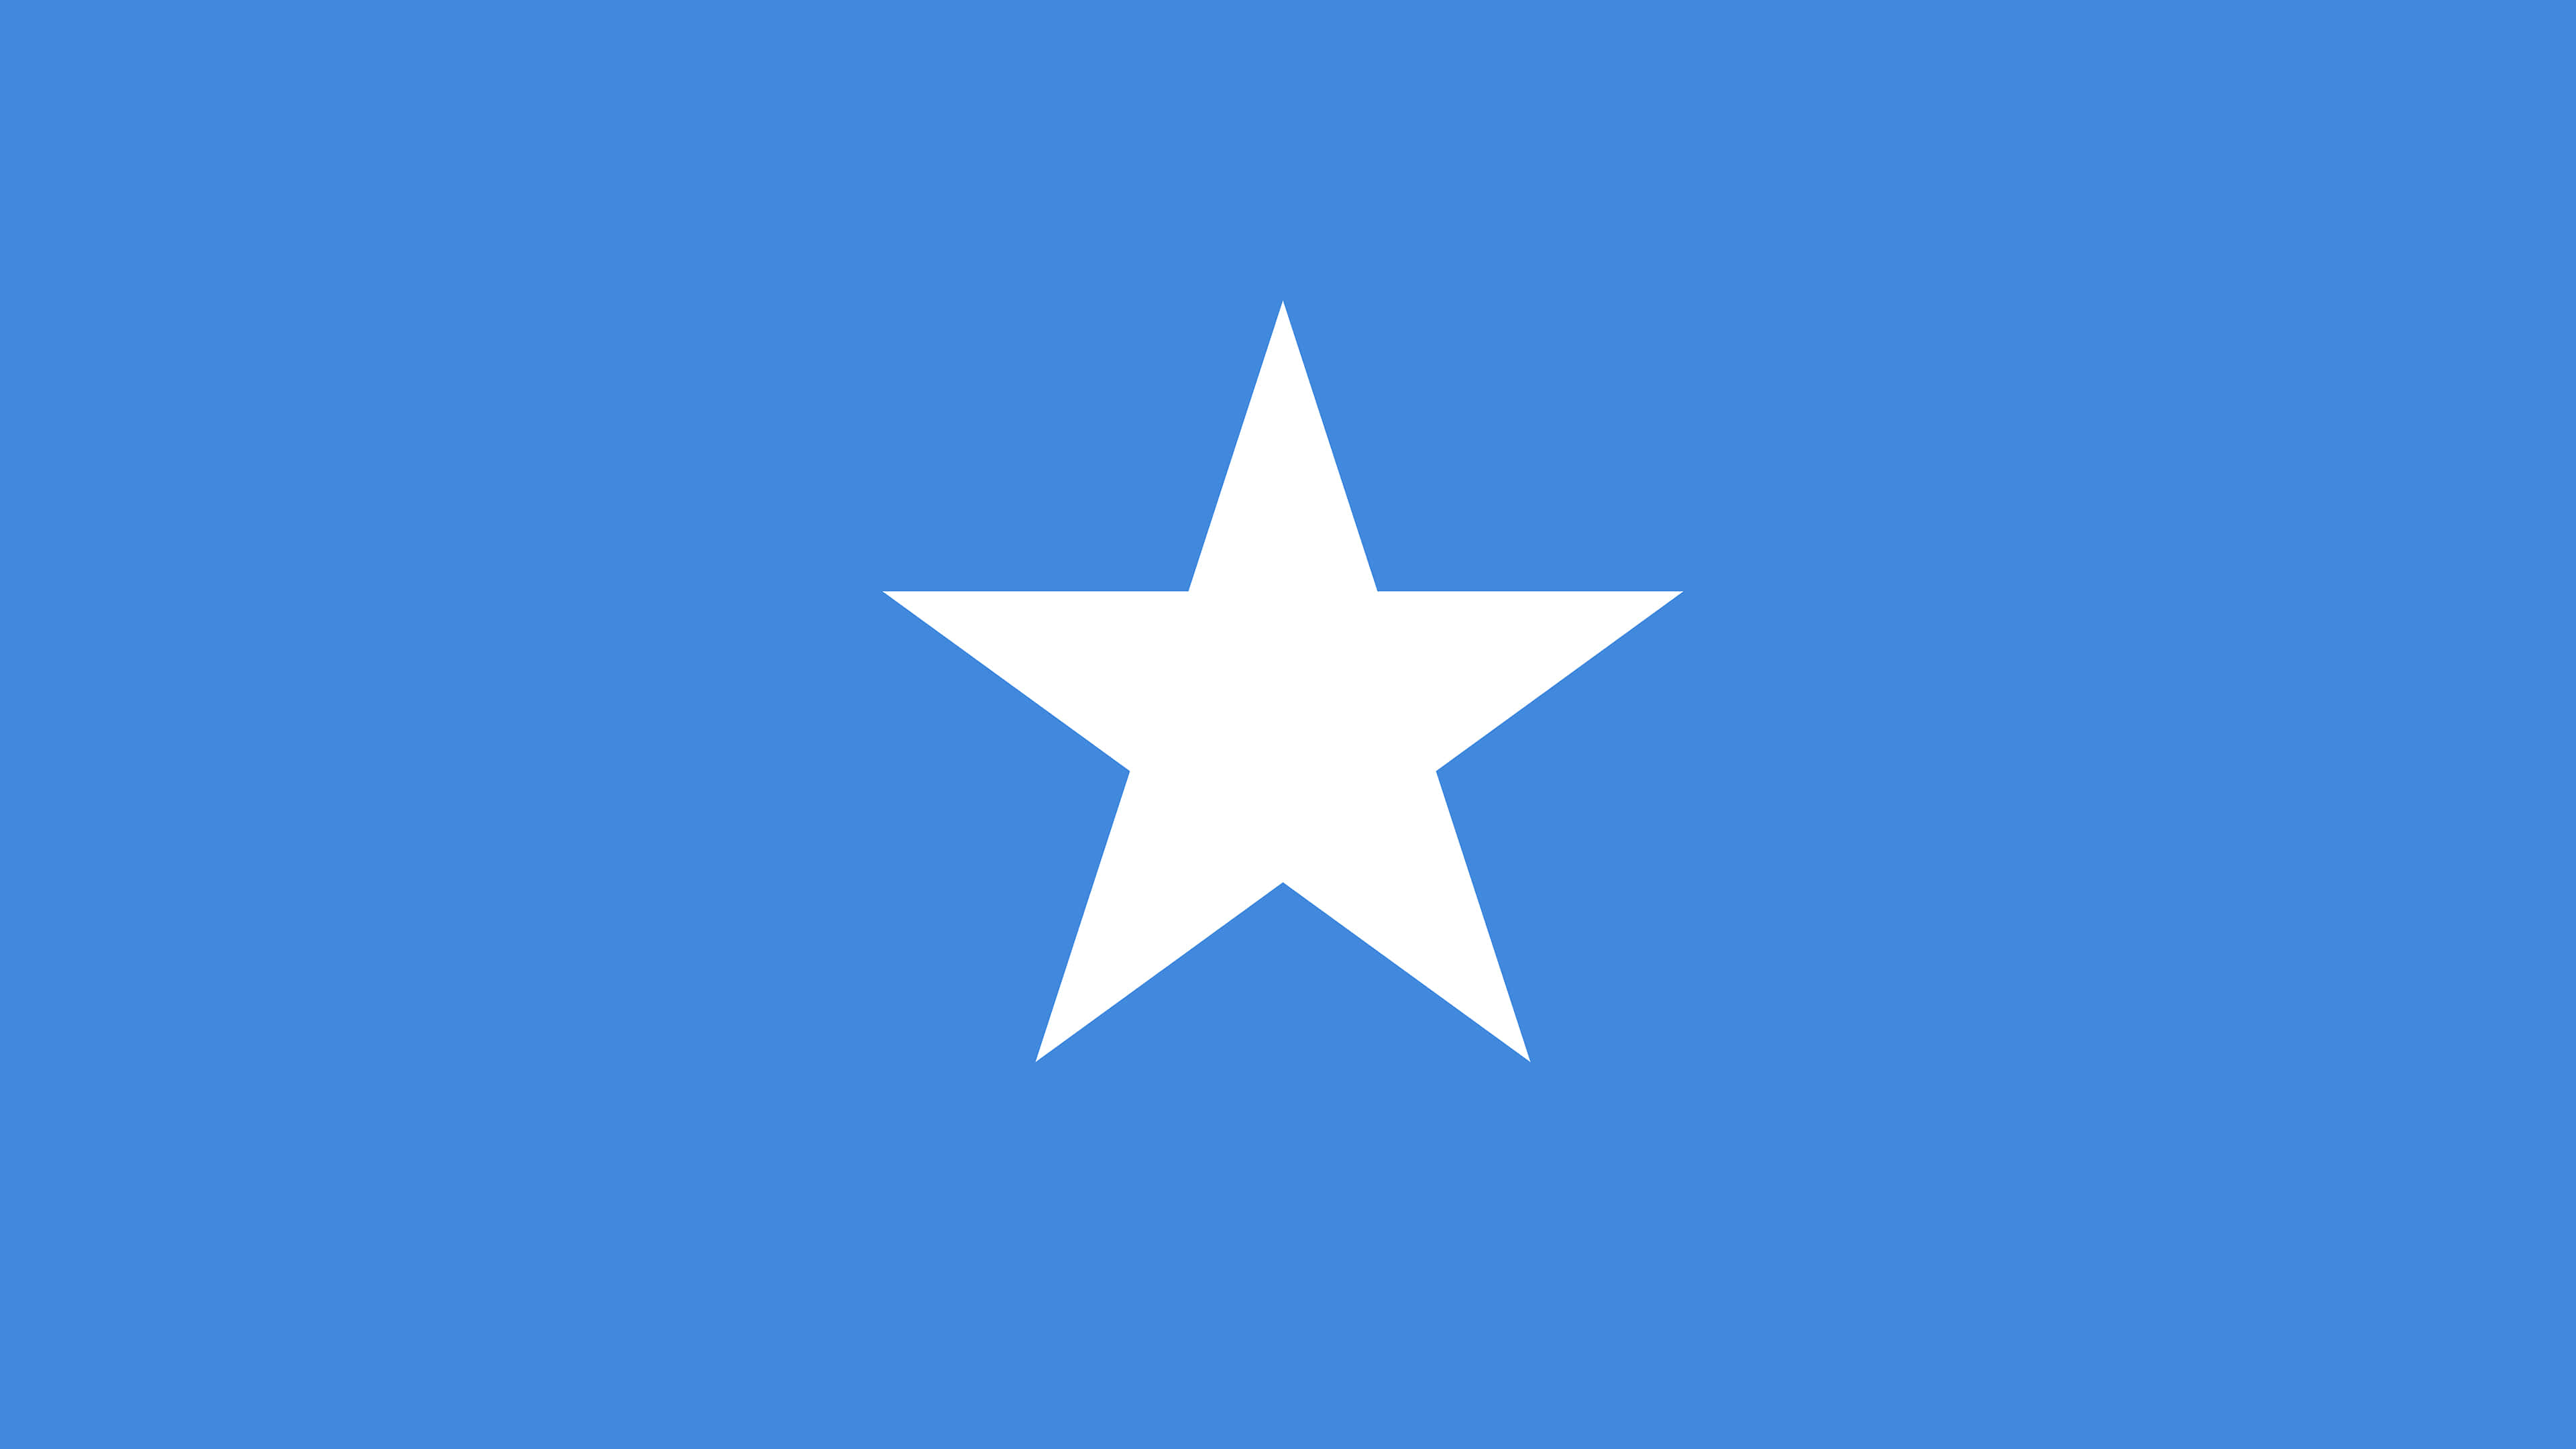 somalia flag uhd 4k wallpaper